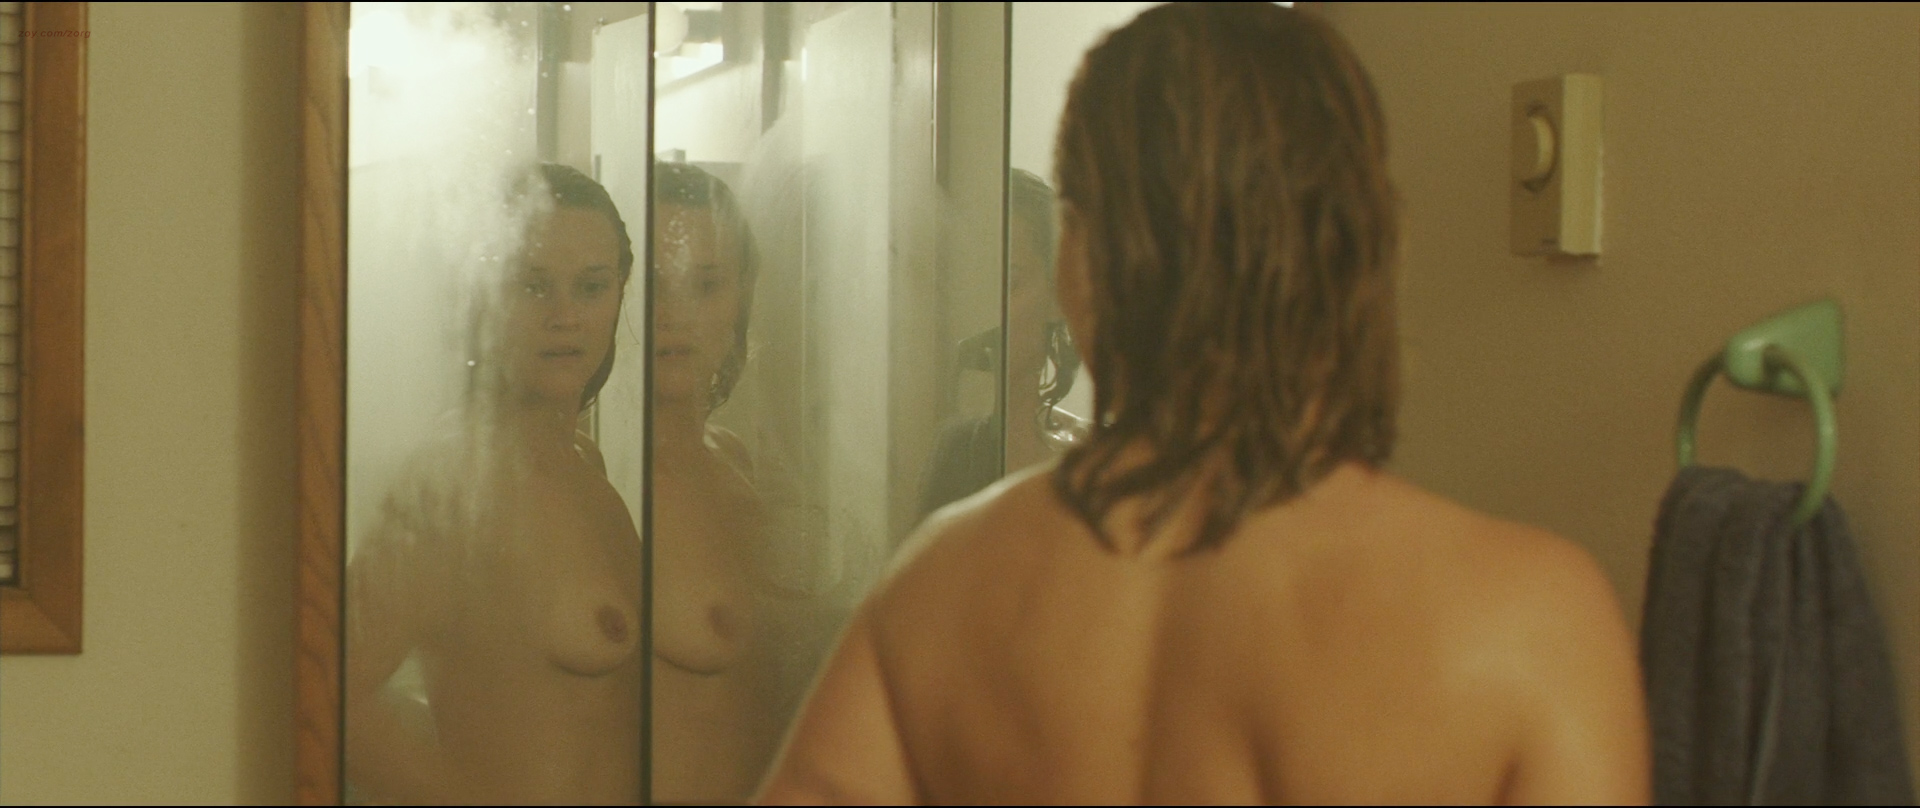 from Logan reese witherspoon movie nude